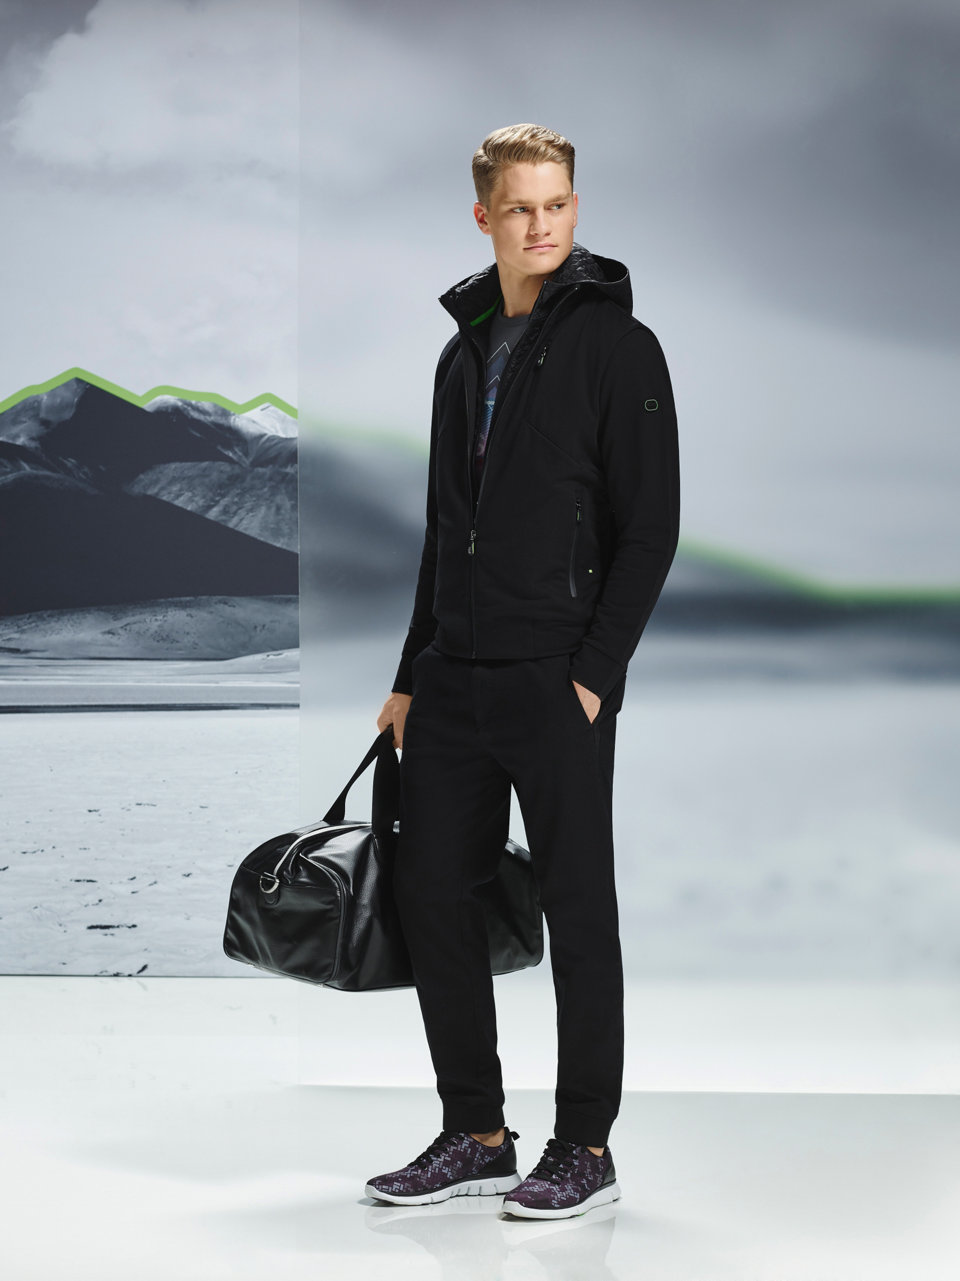 Black outerwear, black jersey, black trousers and black shoes by BOSS Green